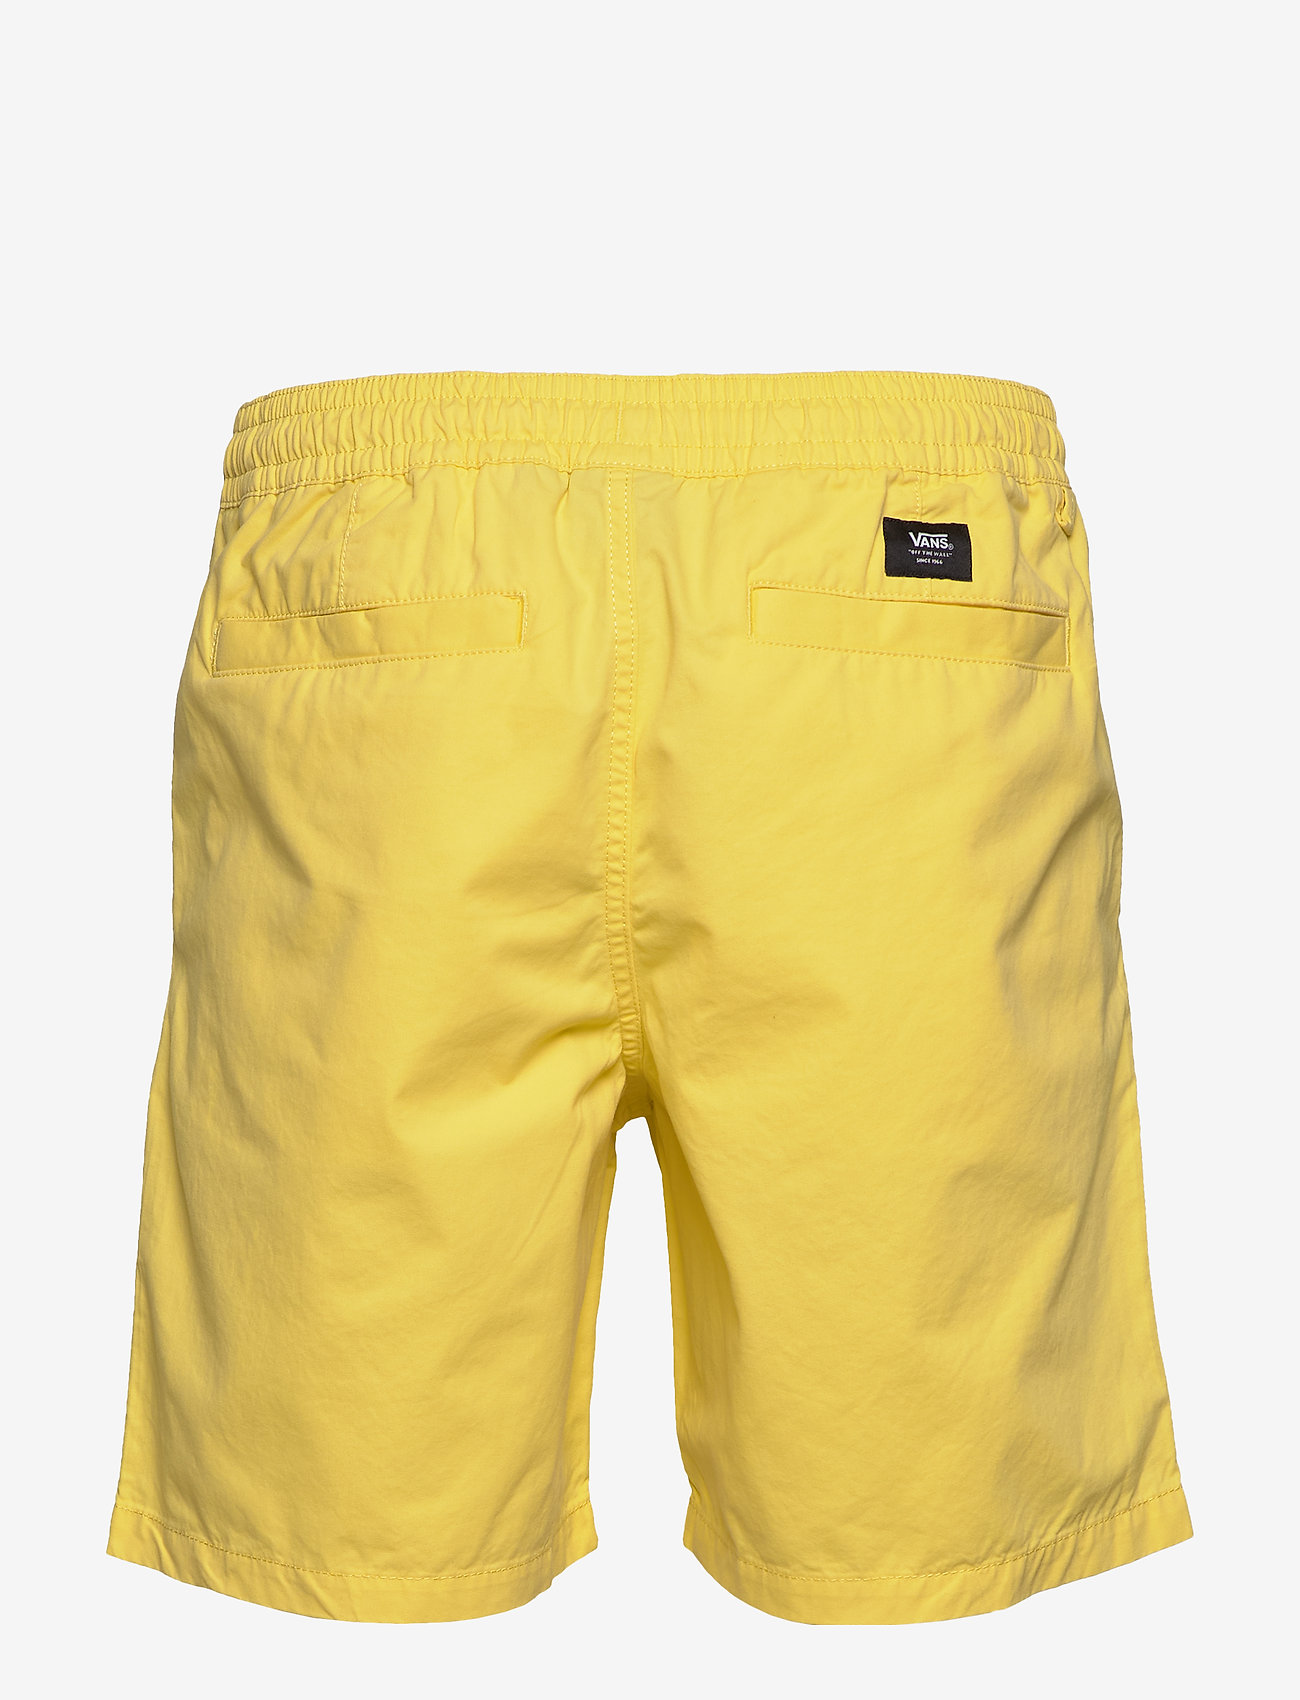 VANS RANGE SHORT 18 - Shorts YELLOW CREAM - Menn Klær